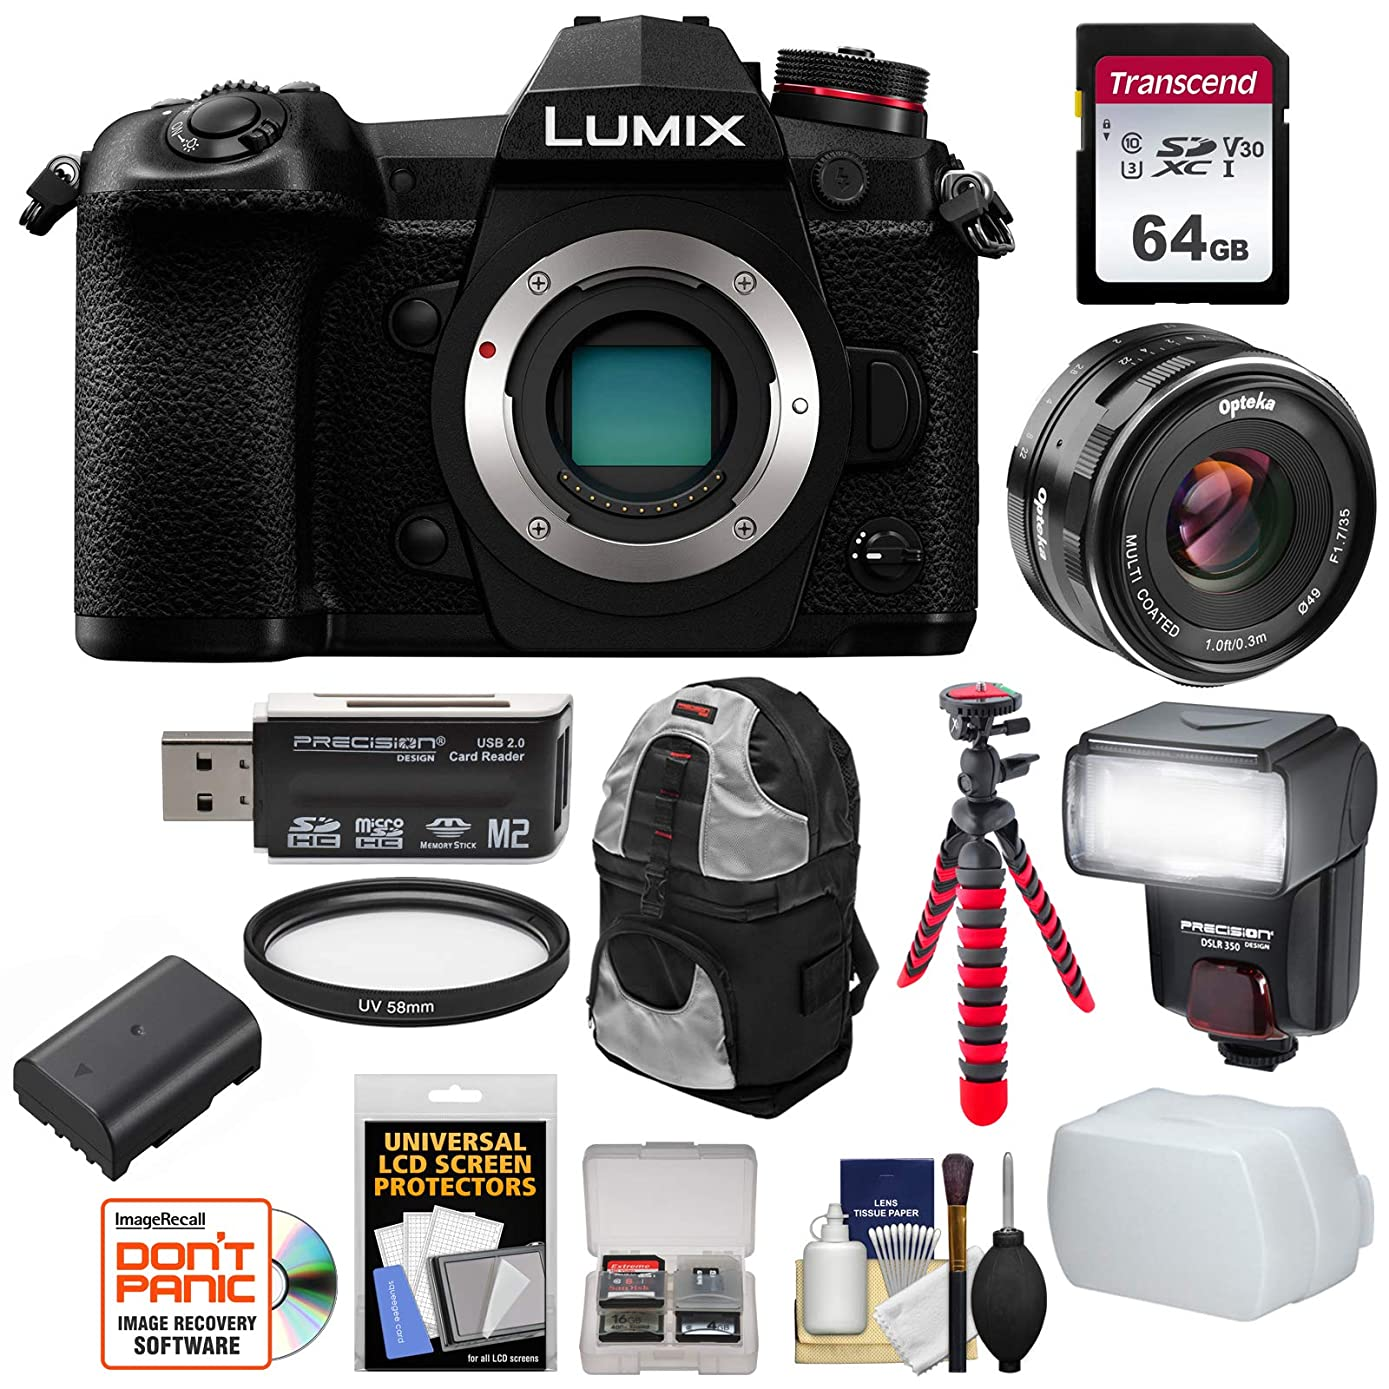 Panasonic Lumix DC-G9 4K Wi-Fi Digital Camera Body with 35mm Lens + 64GB Card + Battery + Backpack + Tripod + Flash + Kit qza7018616317